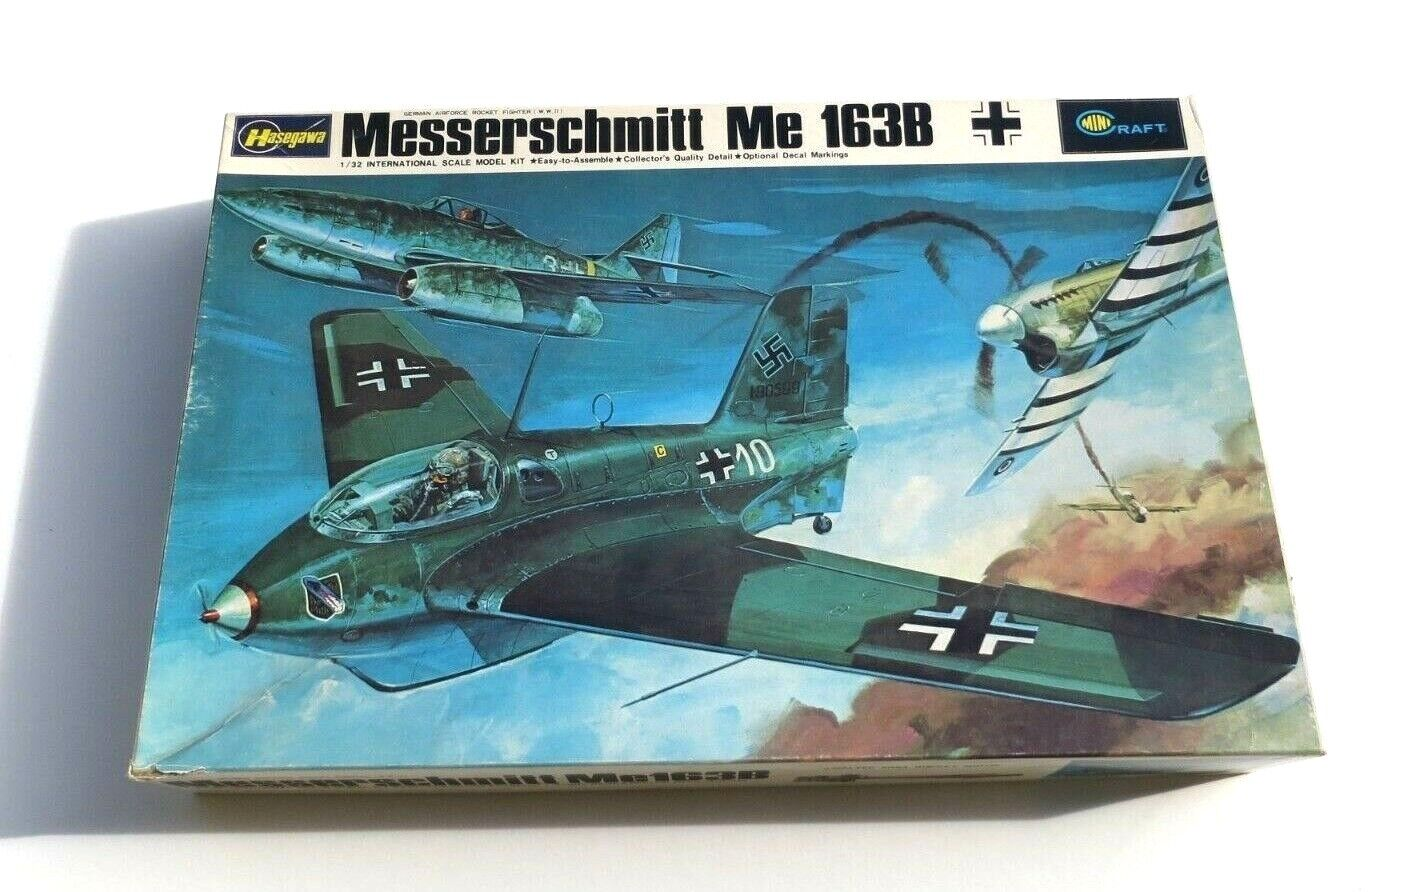 Vintage Hasegawa 1 32 Messerschmitt Me 163B Jet Fighter Plastic Model Plane Kit